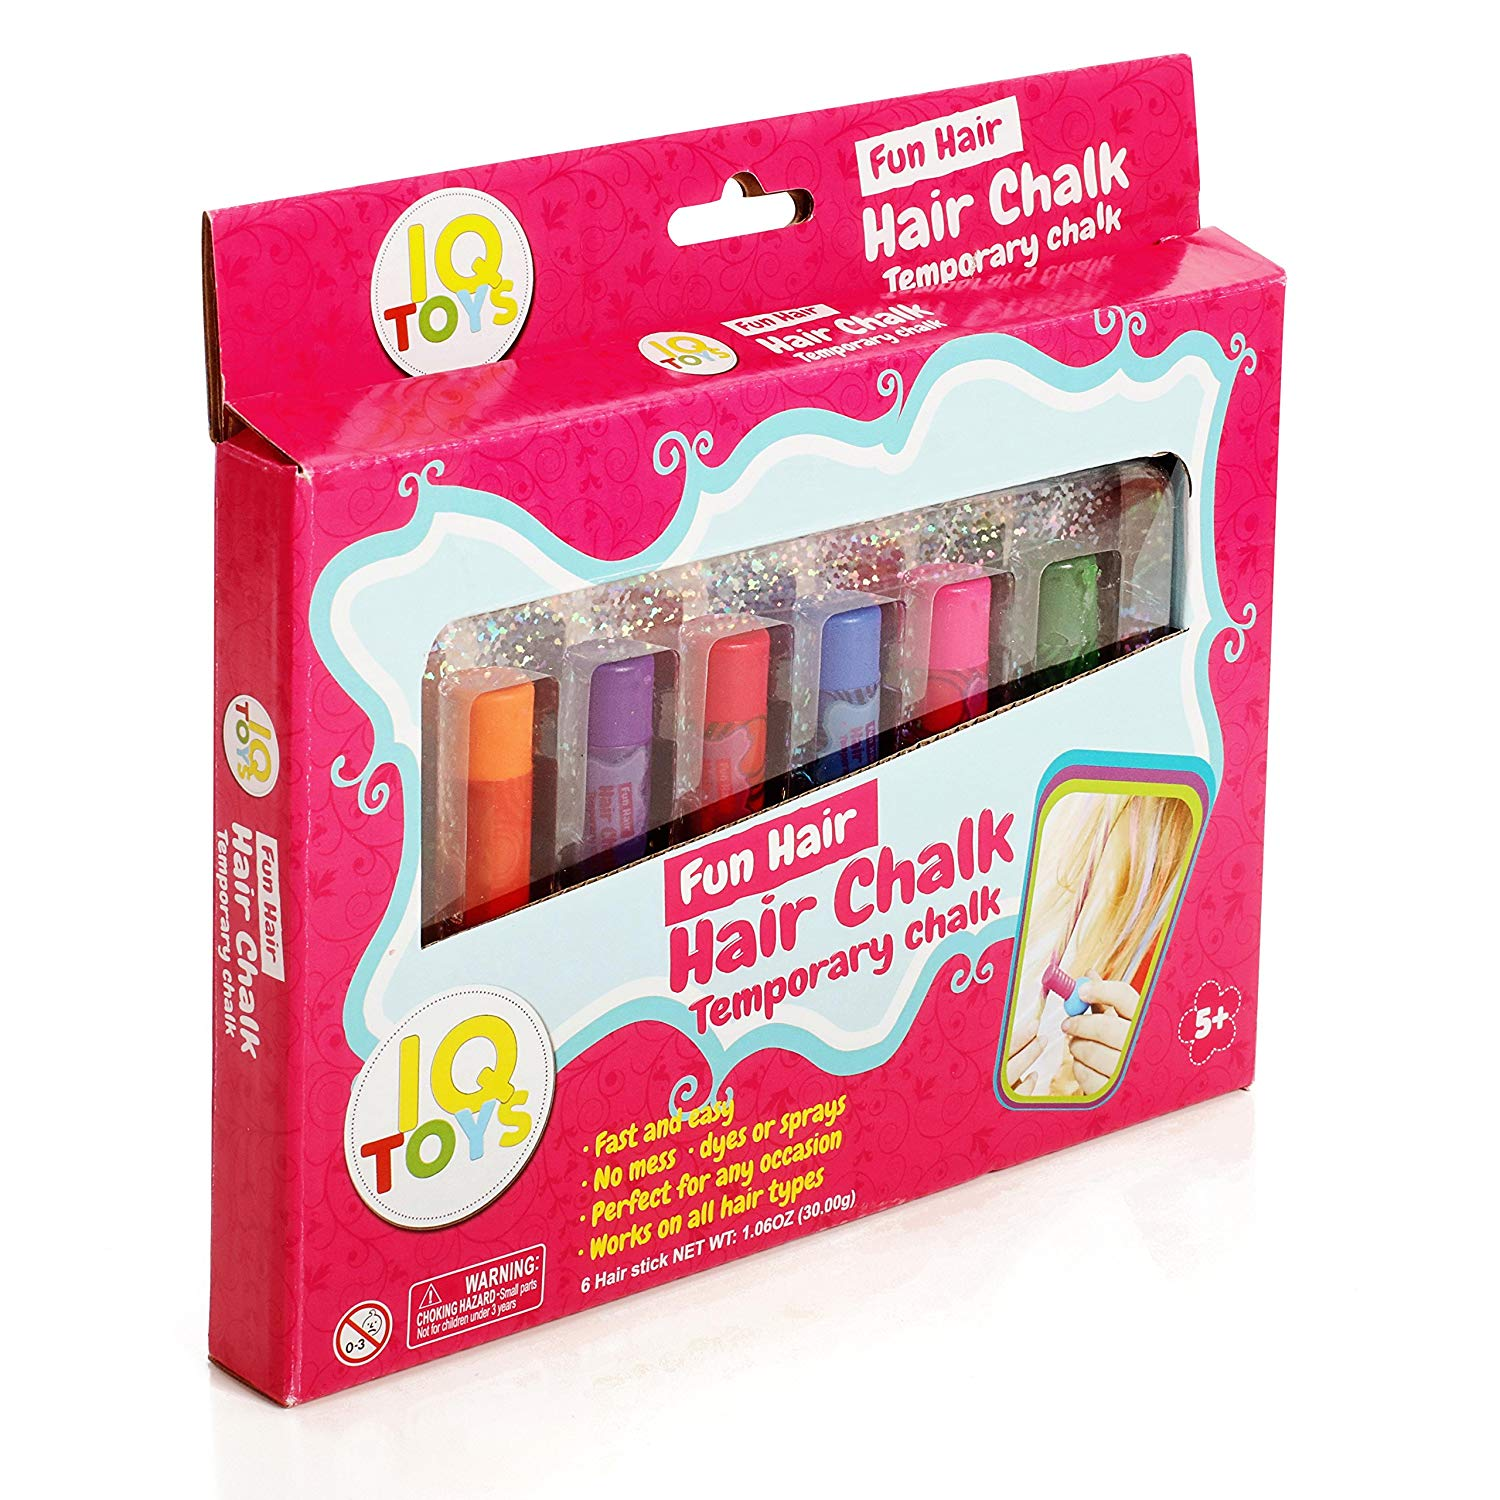 IQ Toys Vibrant Temporary Removable and Washable Hair Chalk for Girls